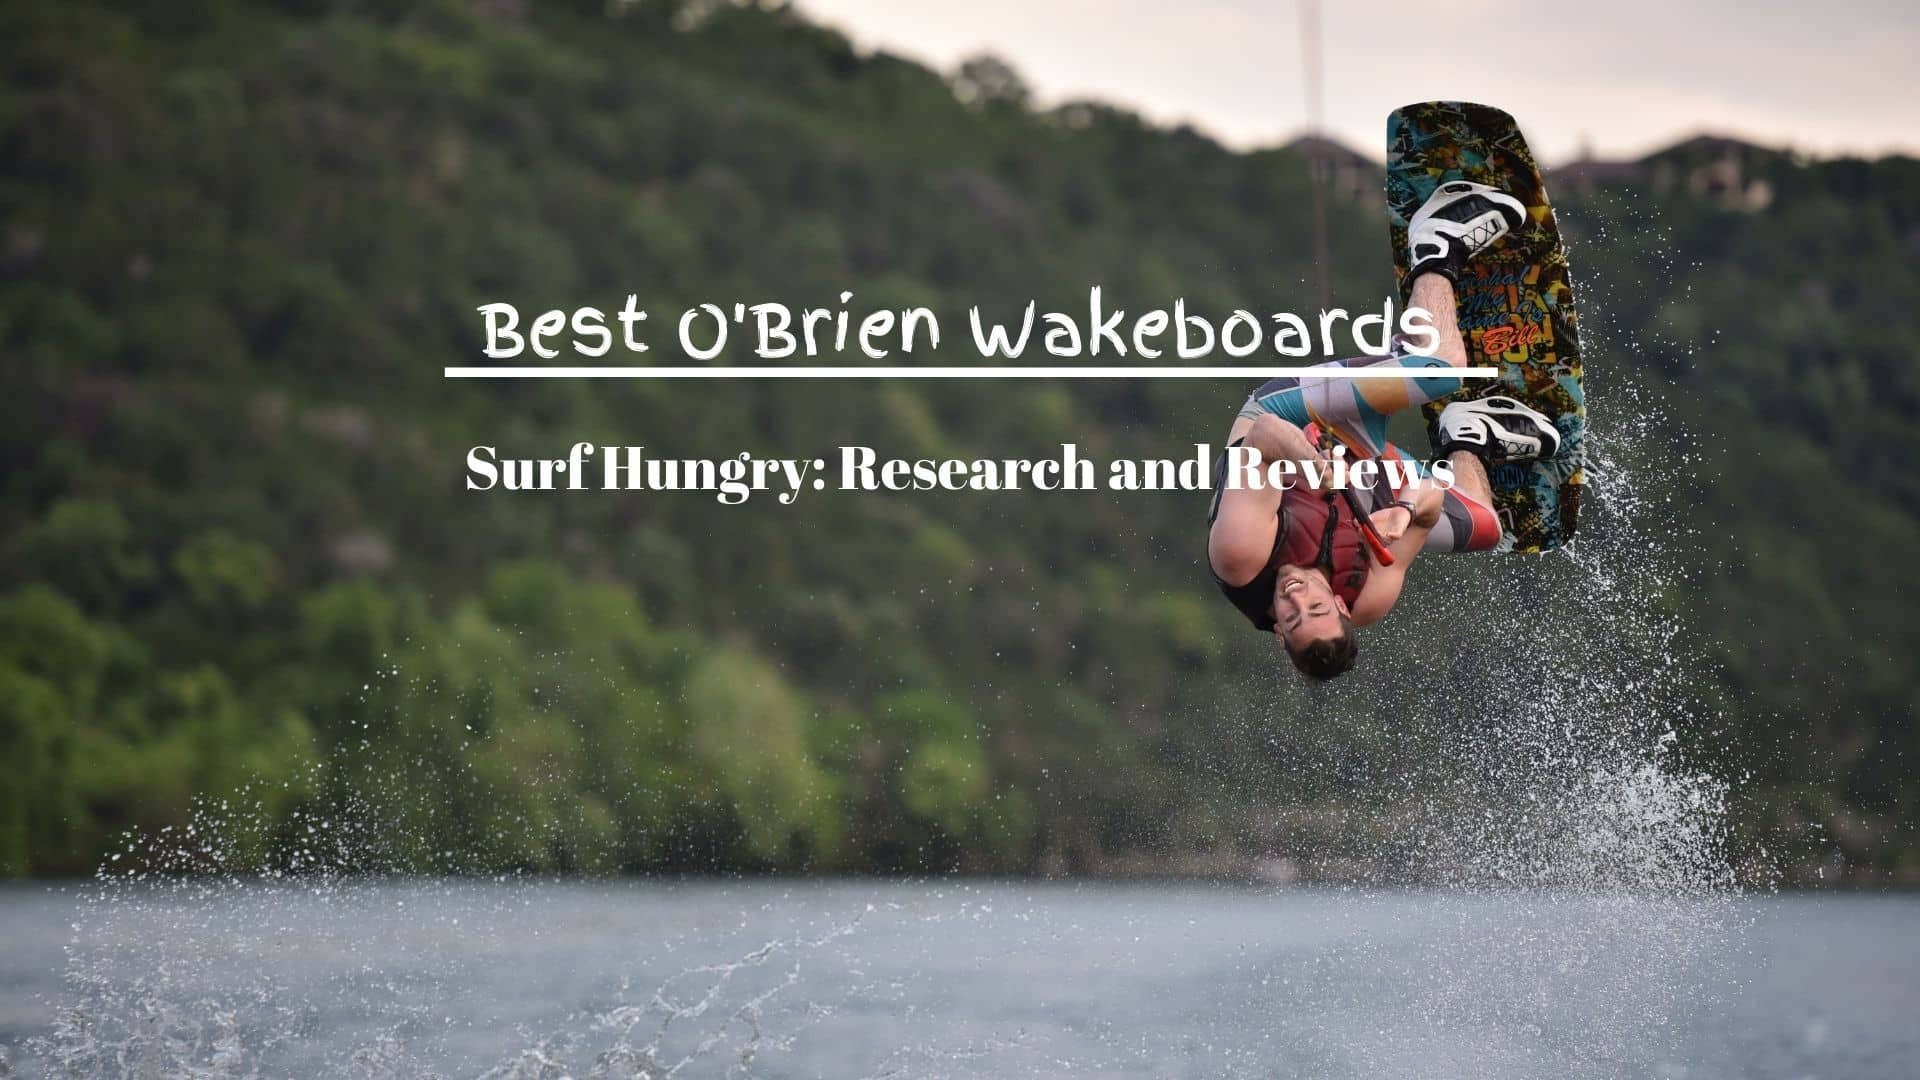 best o'brien wakeboards